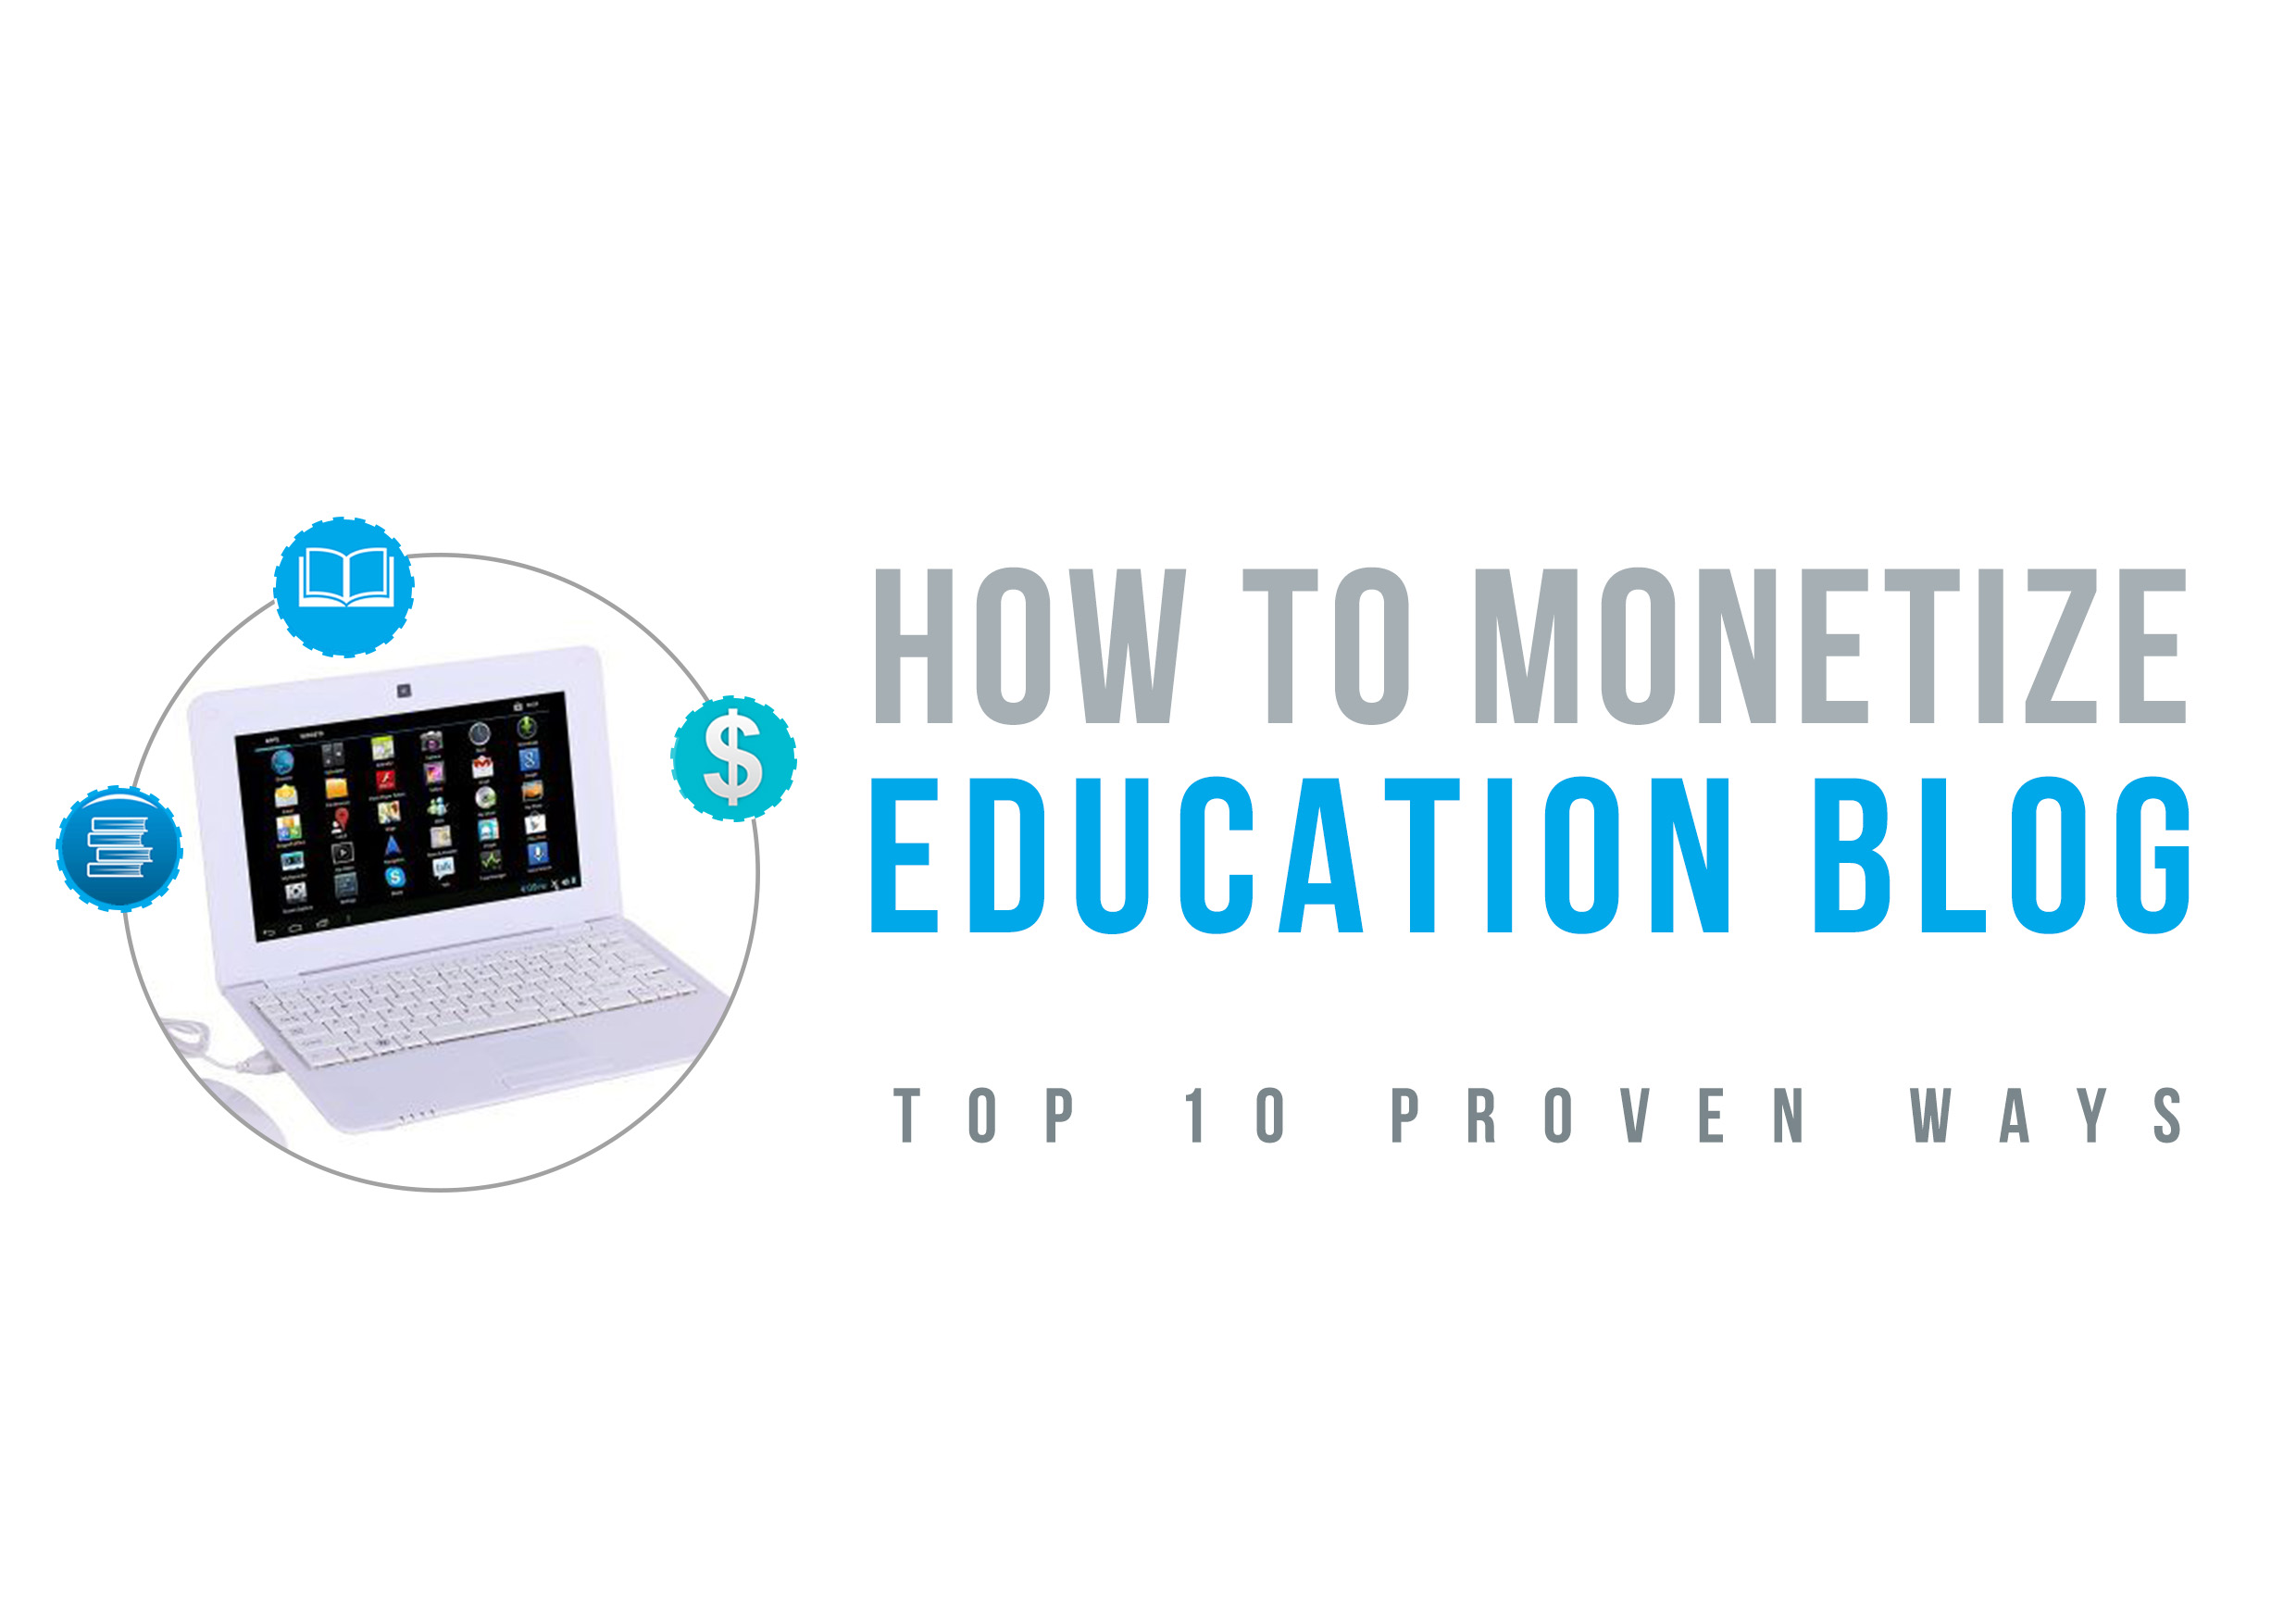 How To Monetize Education Blog – Top 10 Proven Ways image